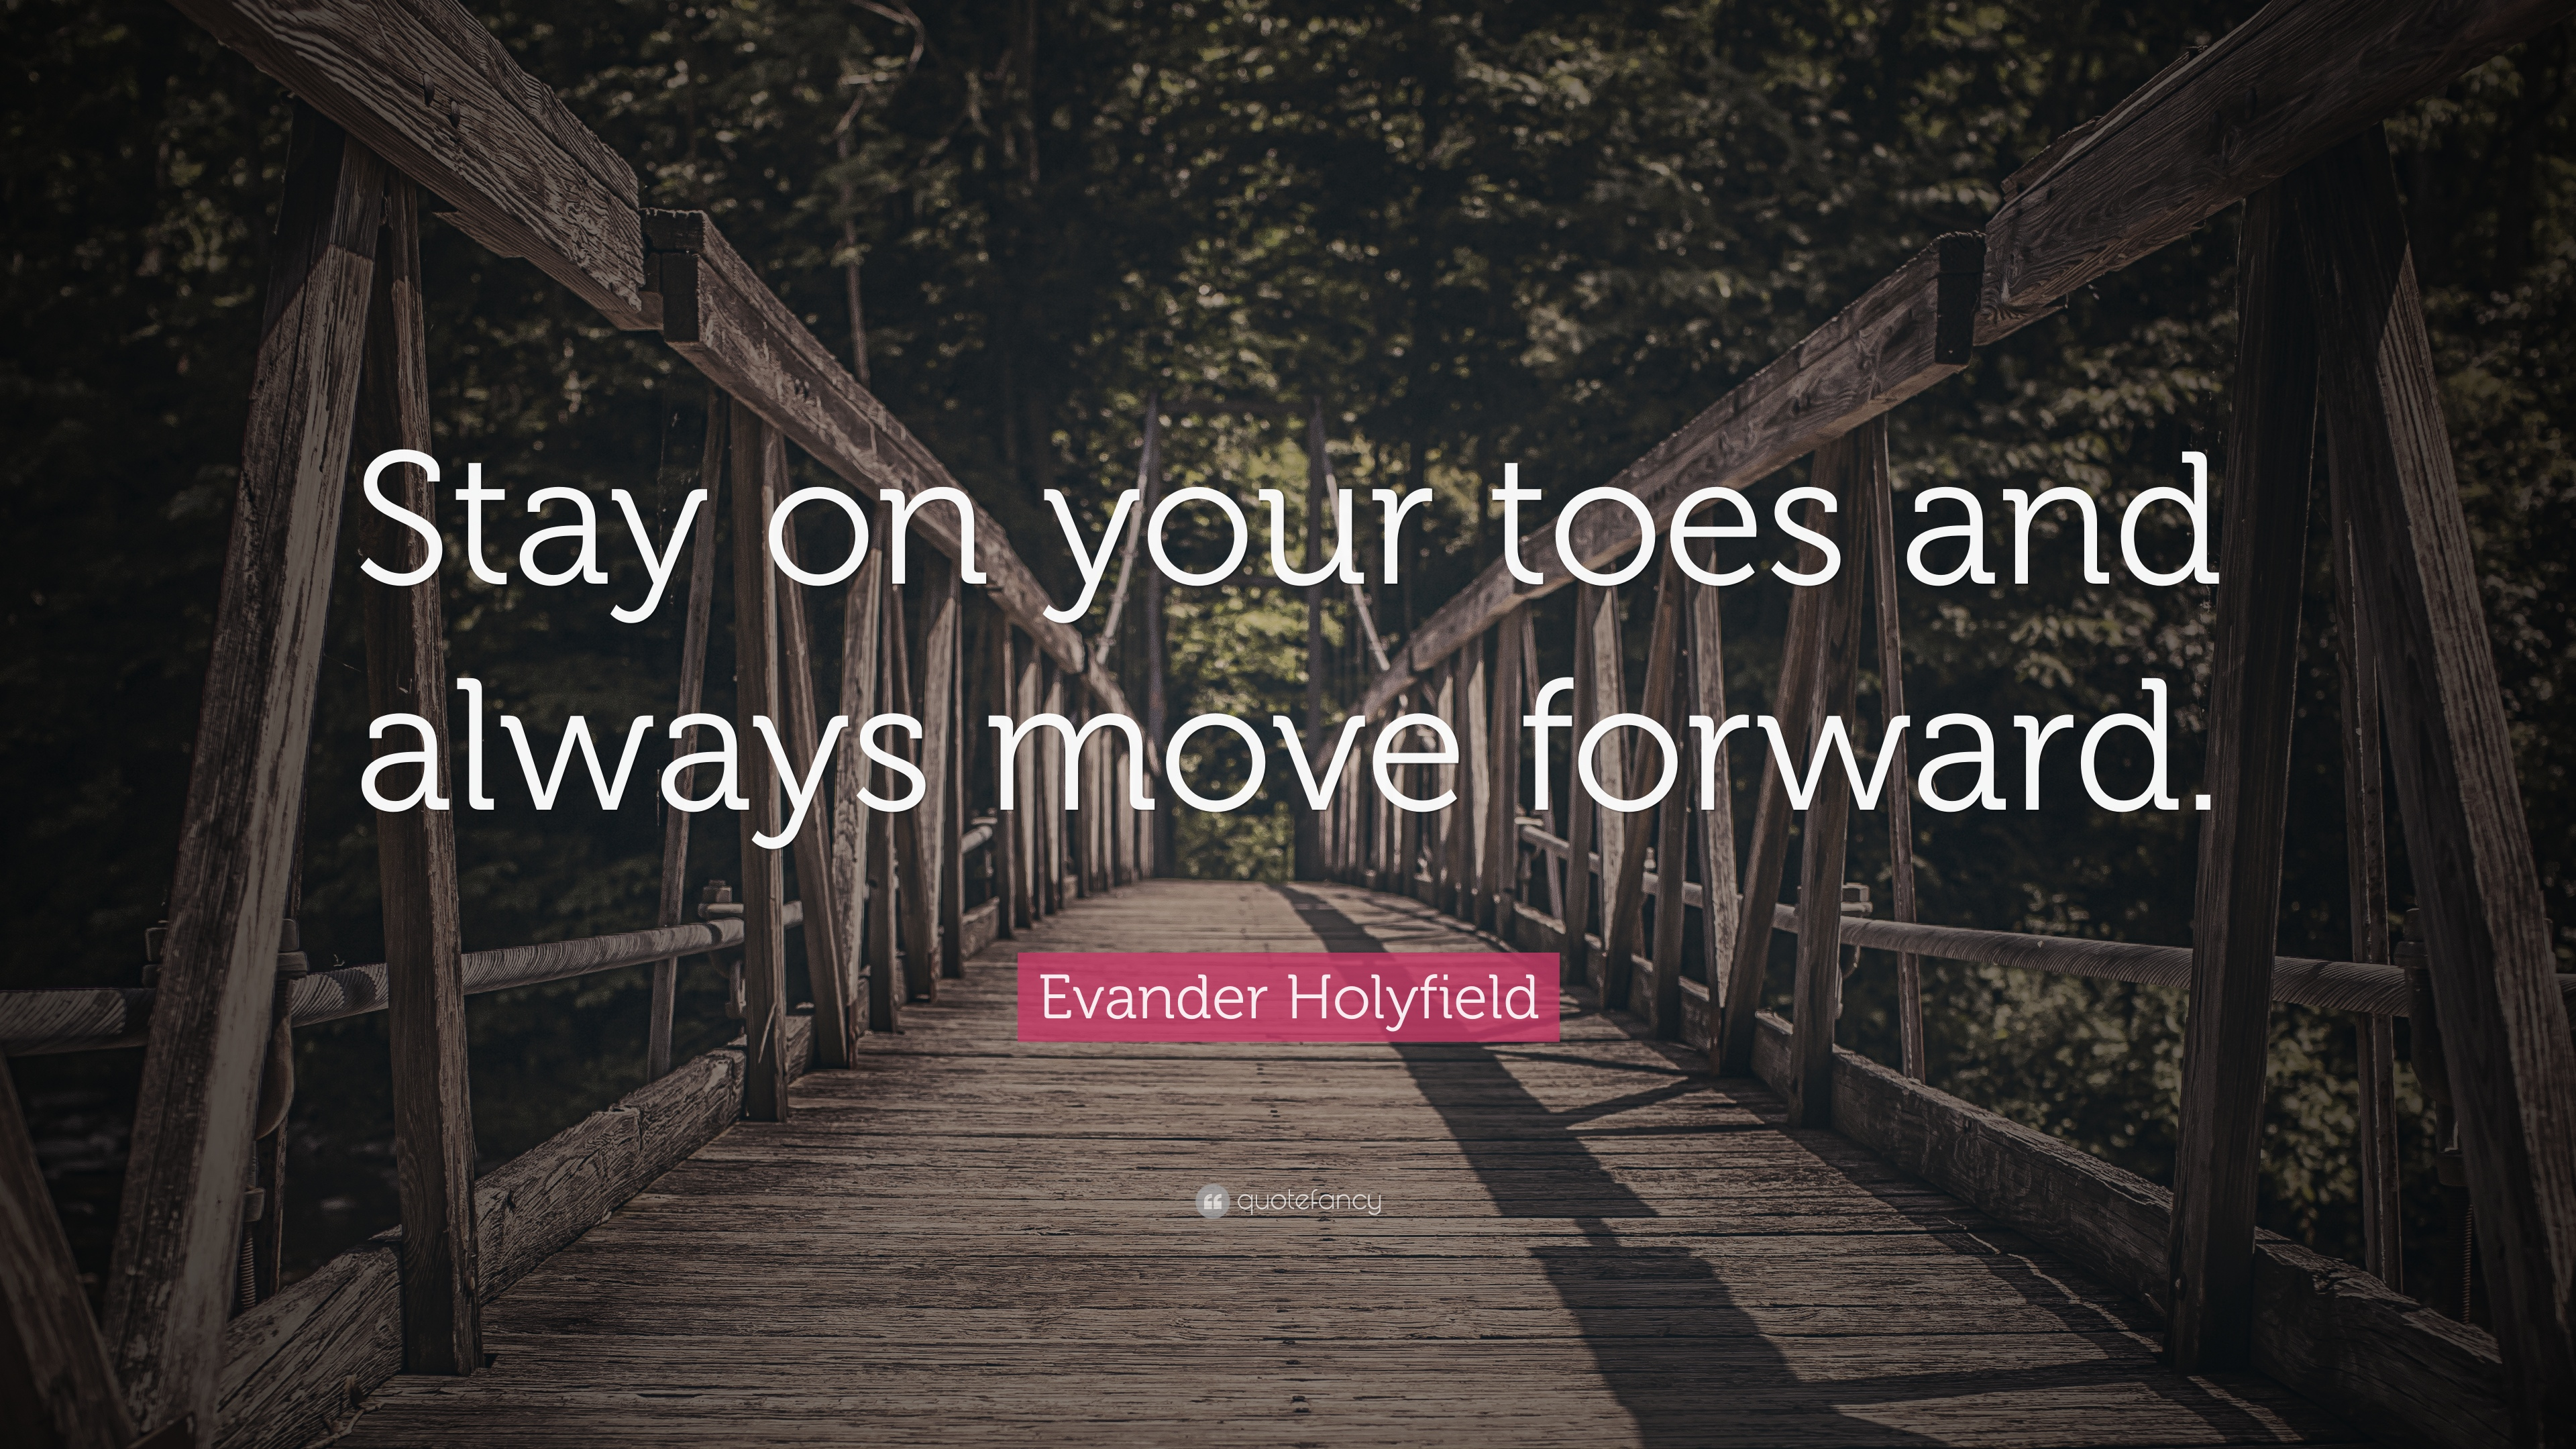 Quotes On Moving Forward Brilliant Moving Forward Quotes 42 Wallpapers  Quotefancy